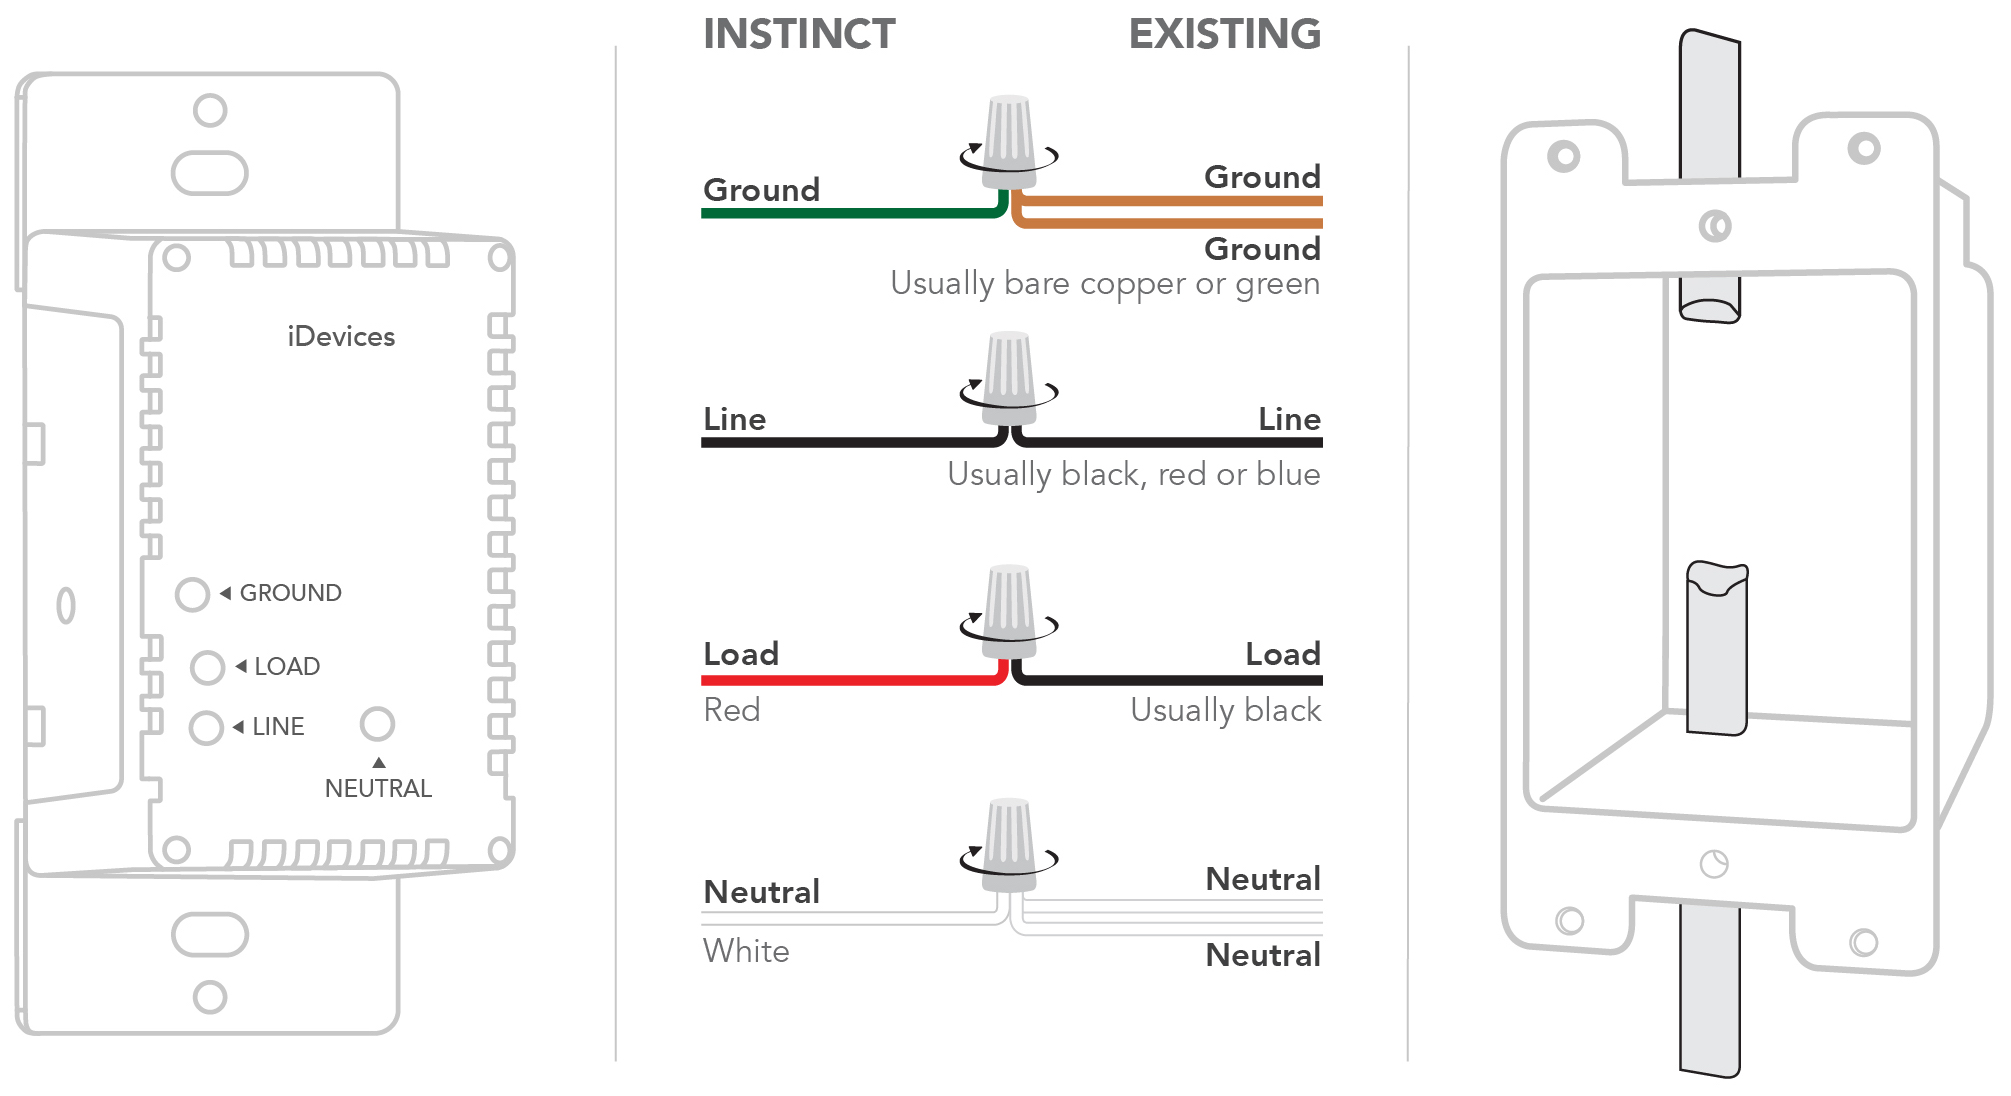 Instinct-Wiring-Diagrams_New-Style_R2_5.jpg